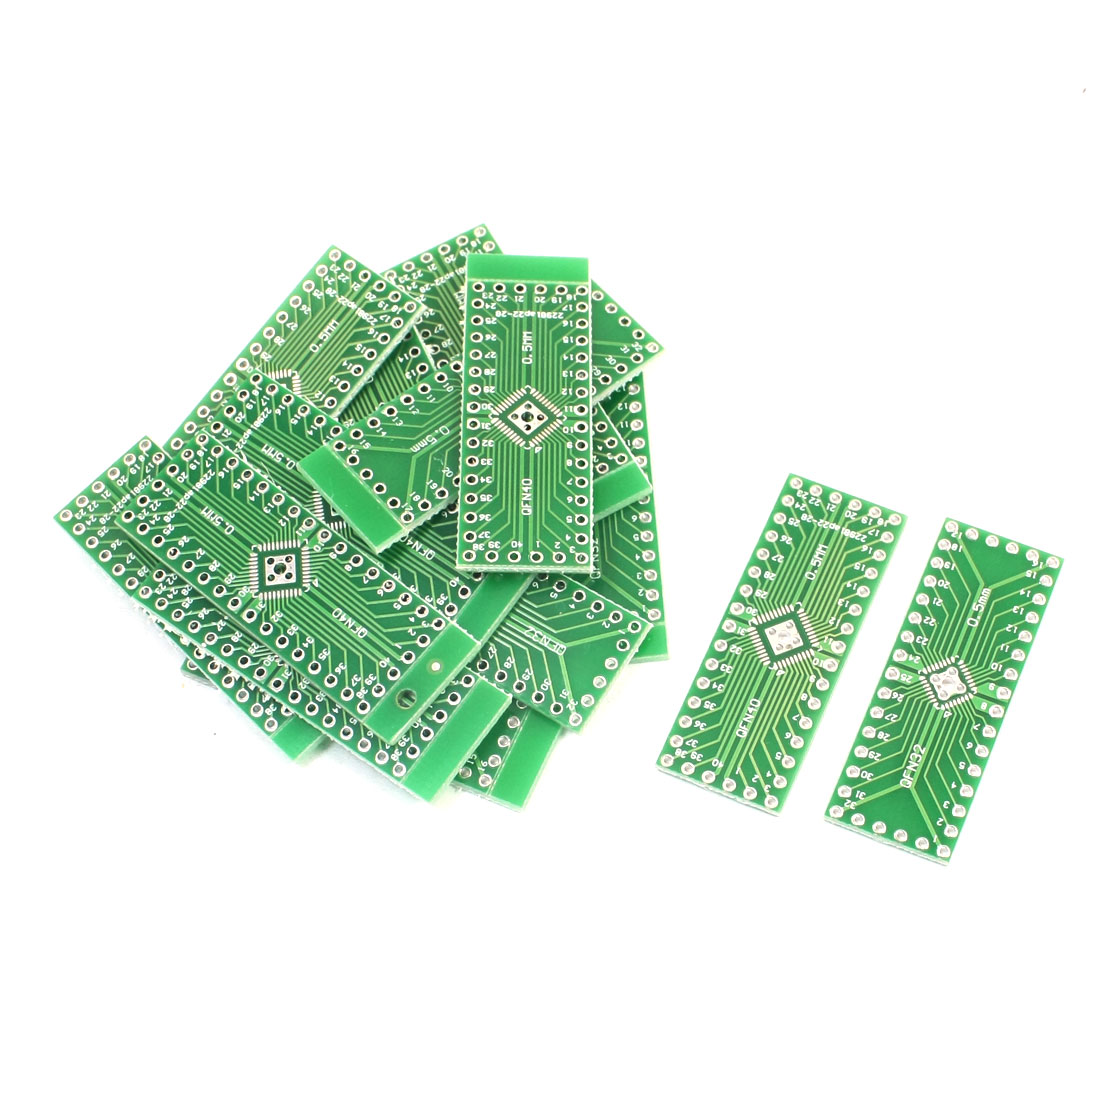 15 Pcs Dual Sides SMD QFN32 QFN40 0.5mm to DIP 32/40 2.54mm IC PCB Adapter Plate Convertor Board